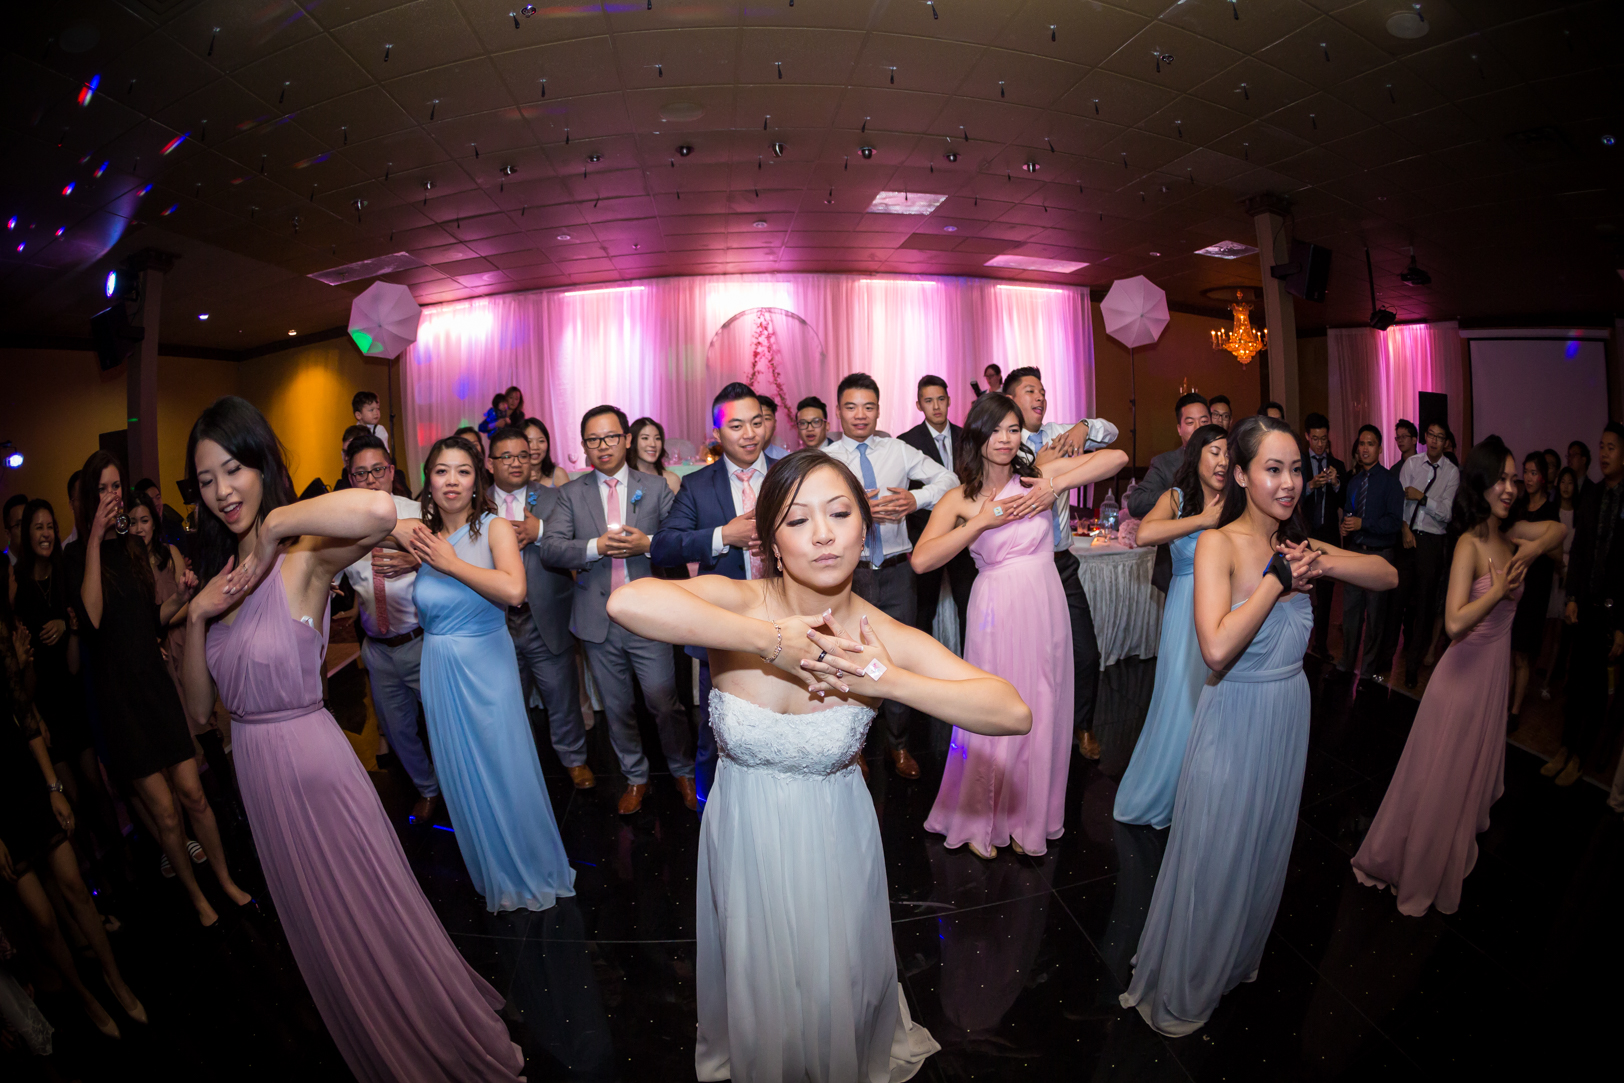 wedding party choreographed dance